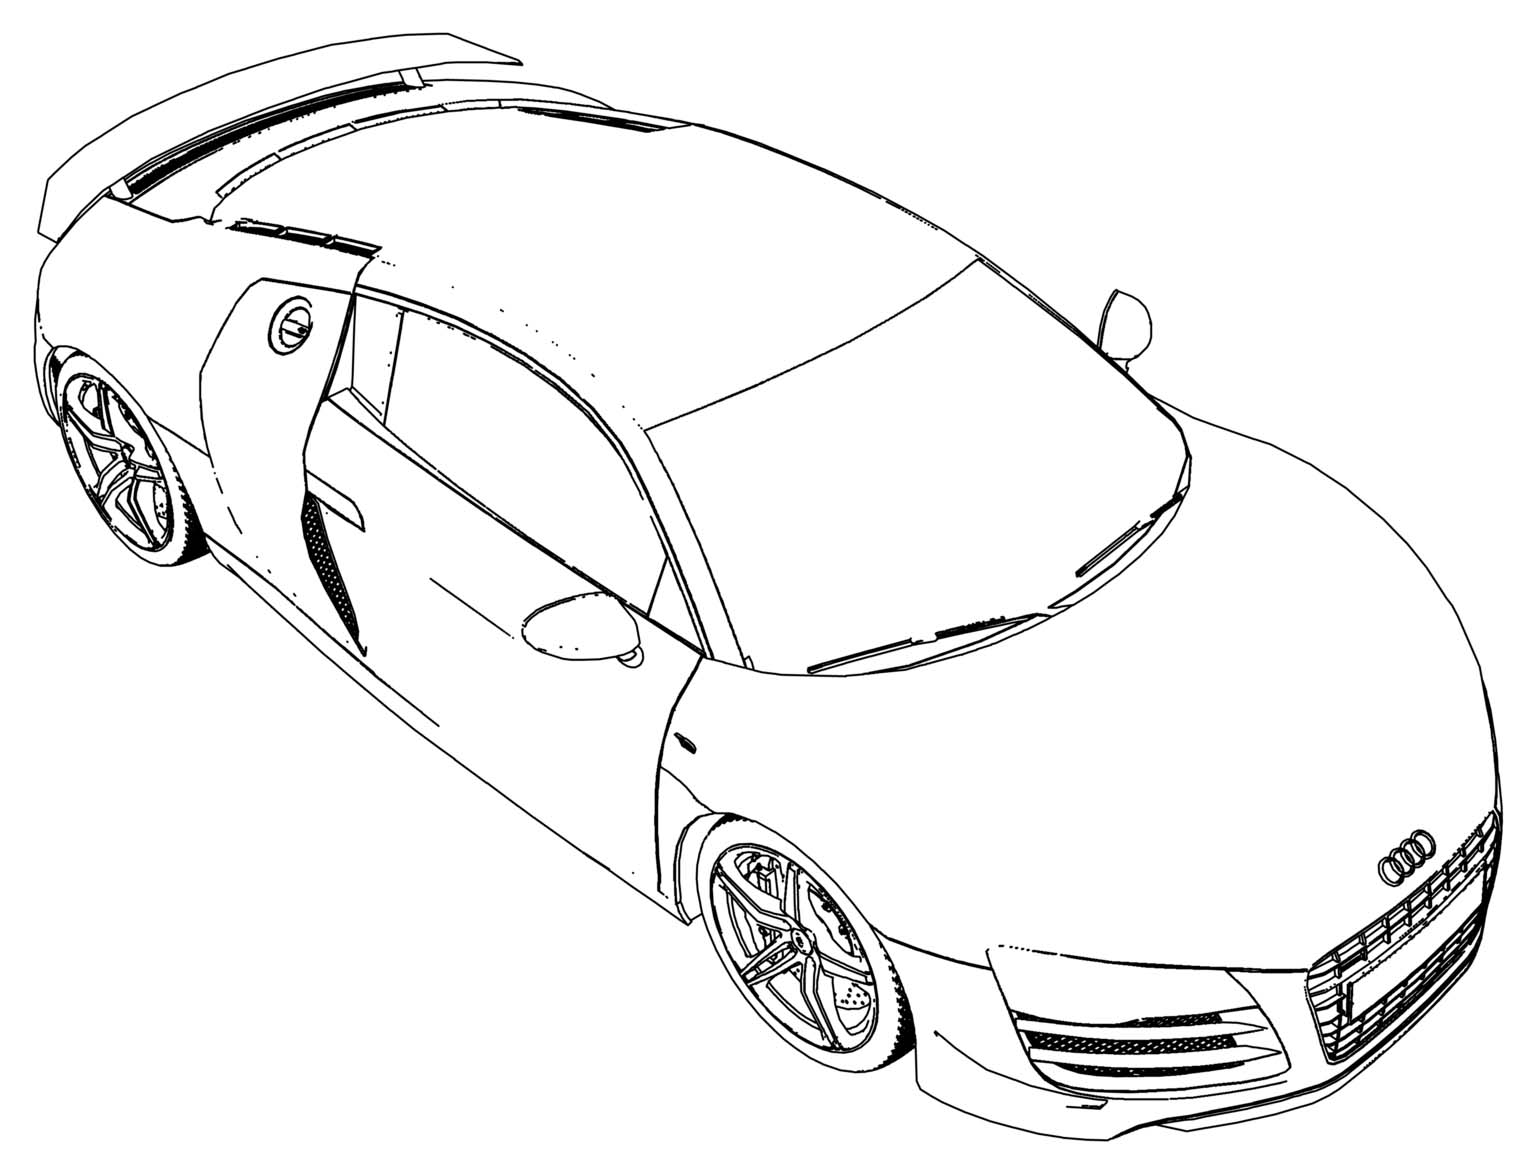 audi coloring pages audi r8 coloring page wecoloringpagecom coloring pages audi